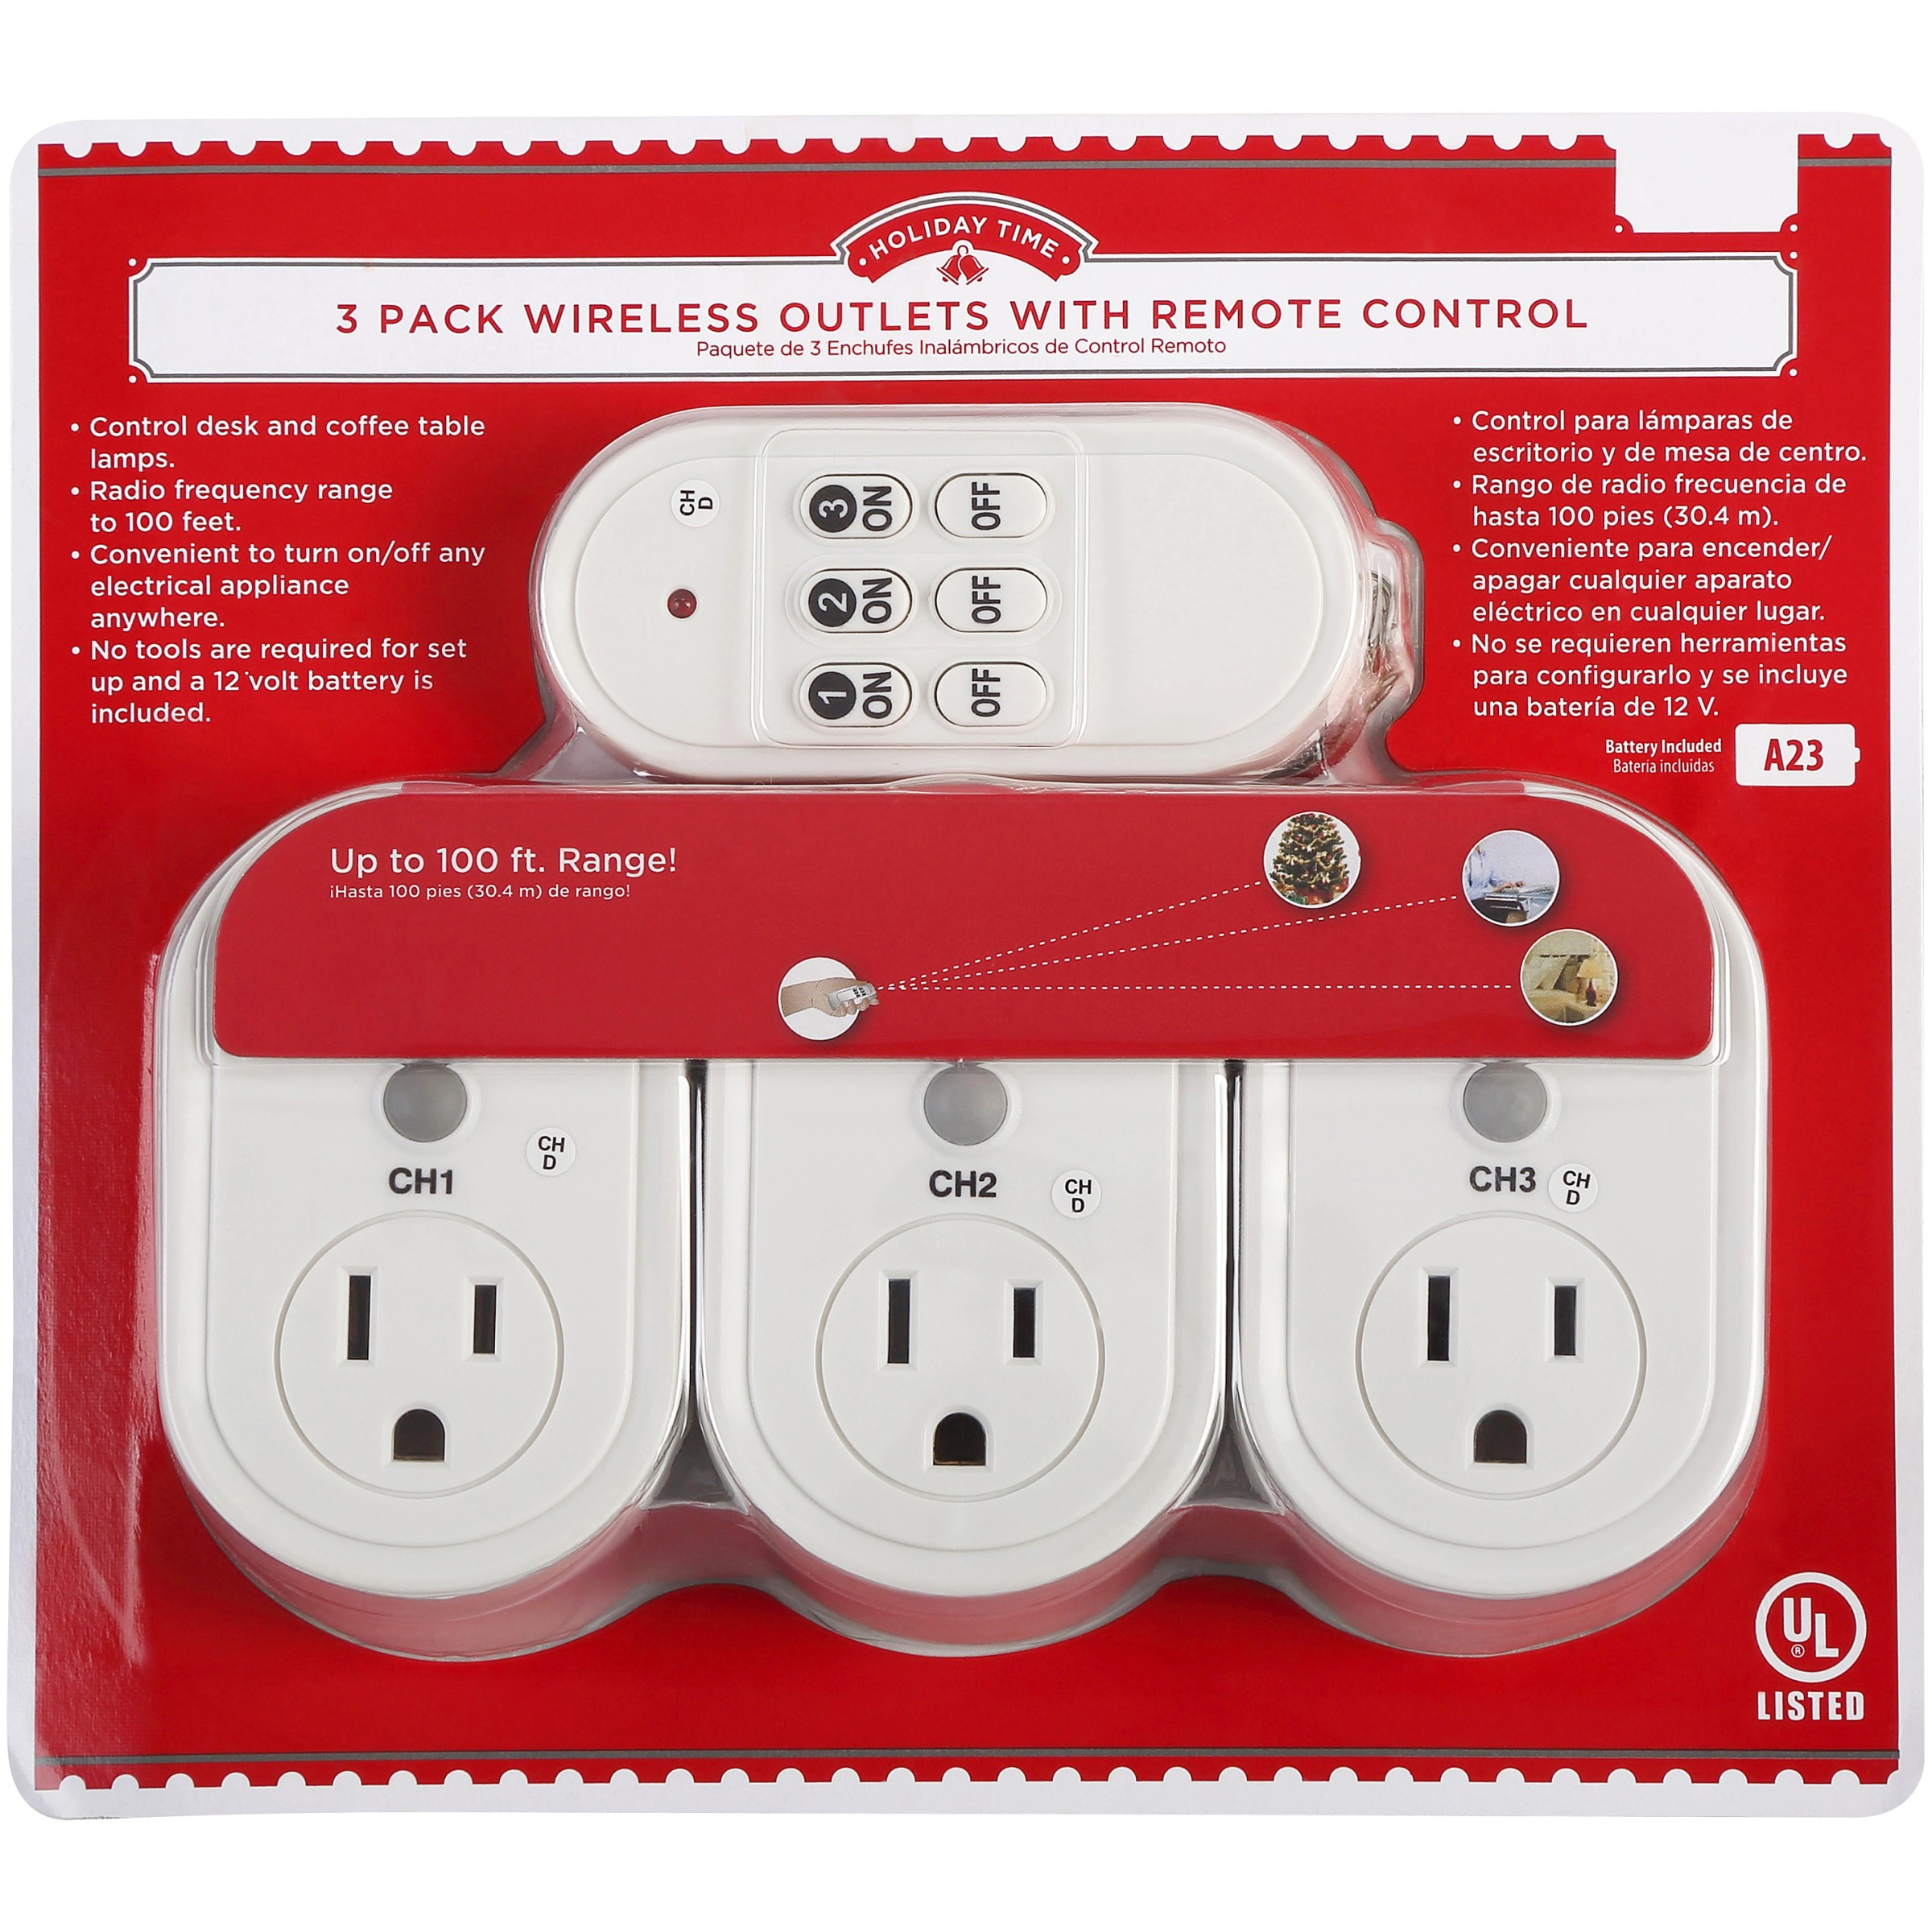 Holiday Time Wireless Outlets with Remote, 3-Pack with 100 Foot Radio Frequency Range